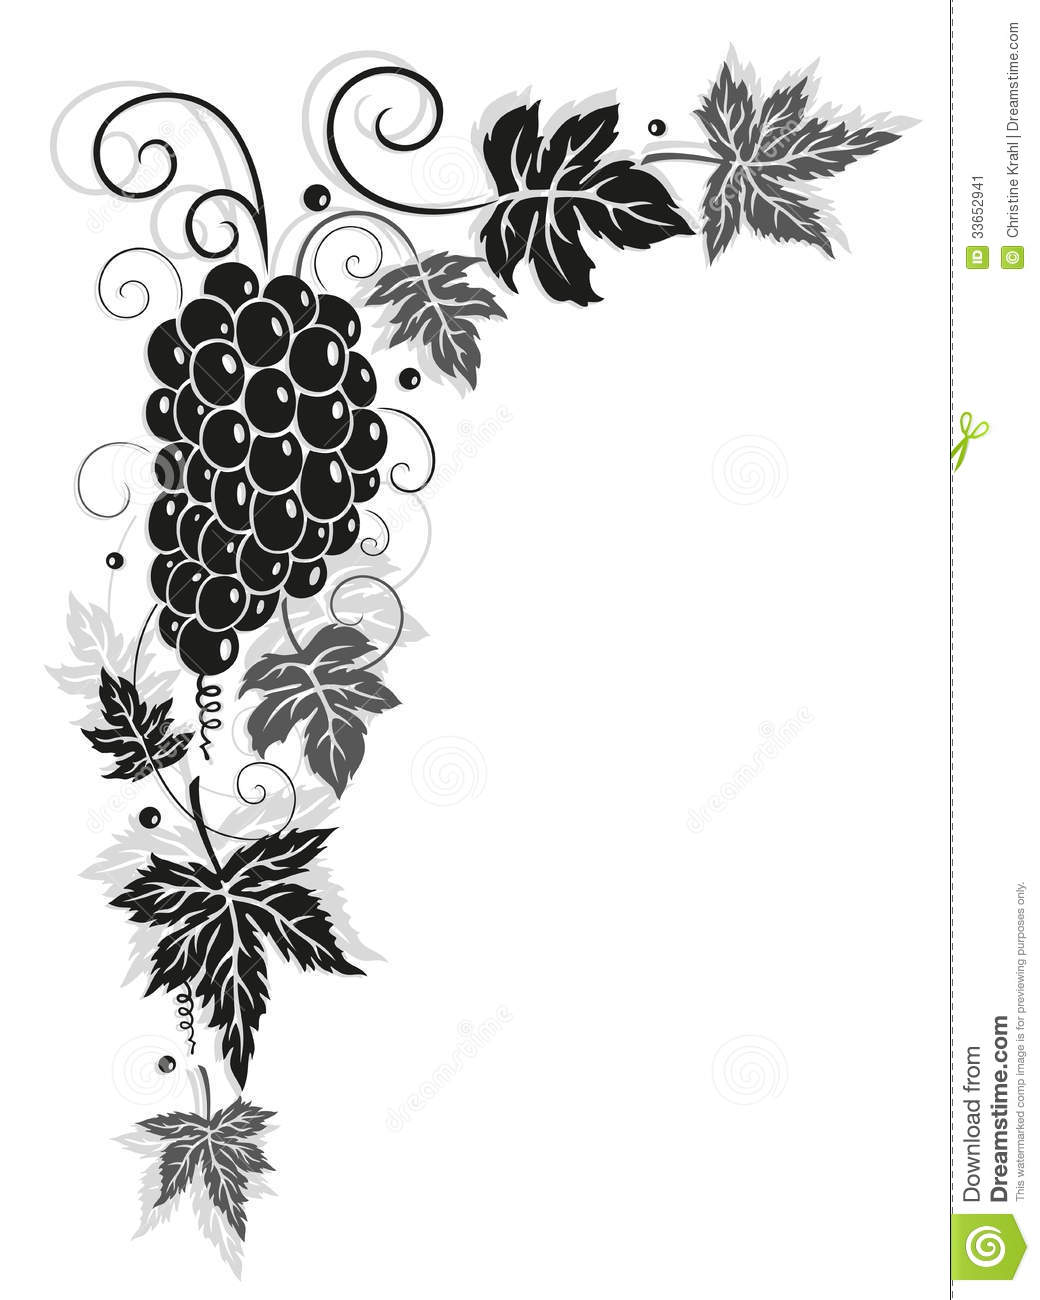 Vine, Leaves, Autumn, Border Stock Image - Image: 33652941